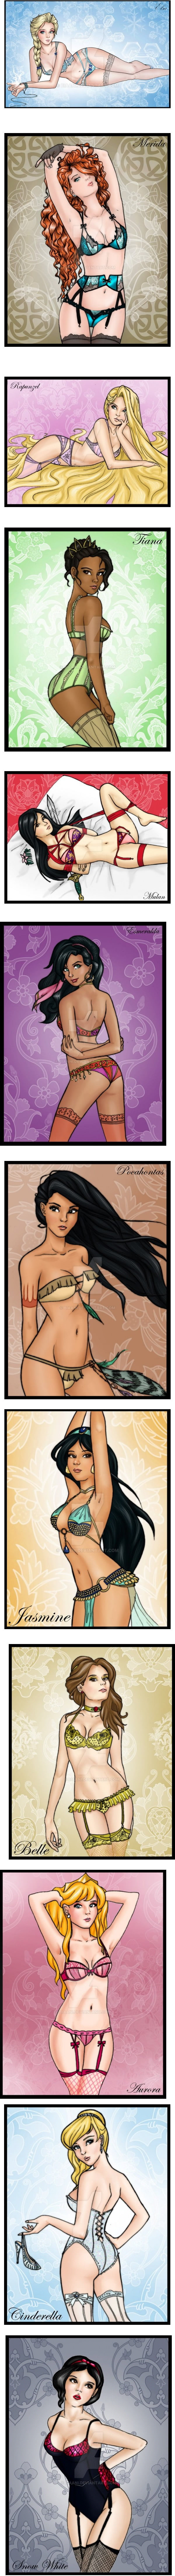 Have you heard that an artist made drawings of the Disney princesses in lingerie... Here you go